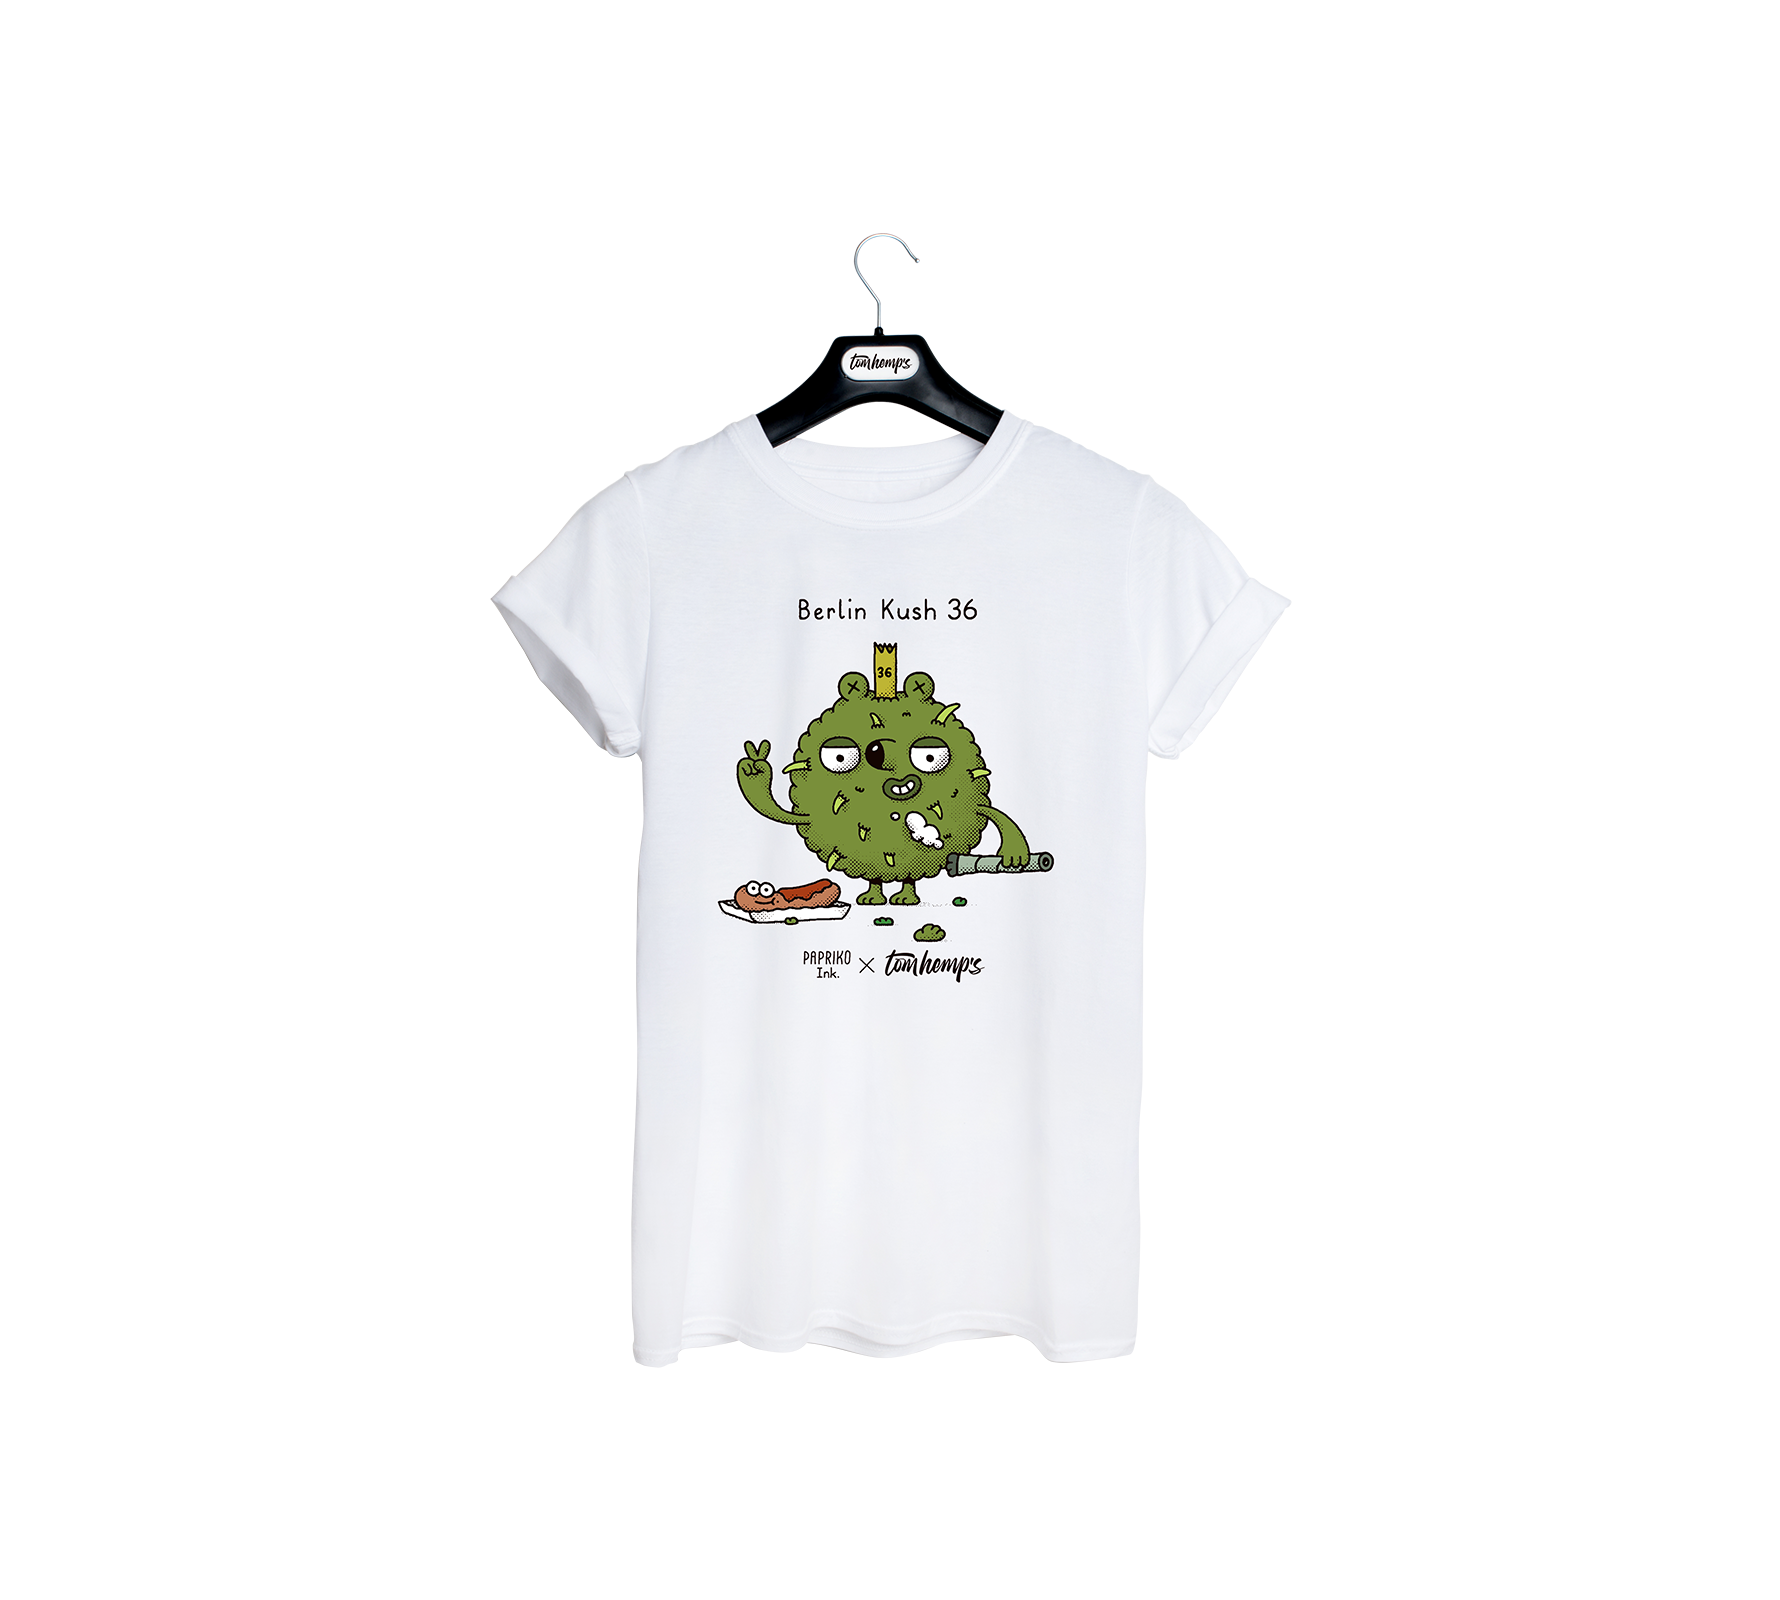 T-Shirt Papriko ink Berlin Kush 36